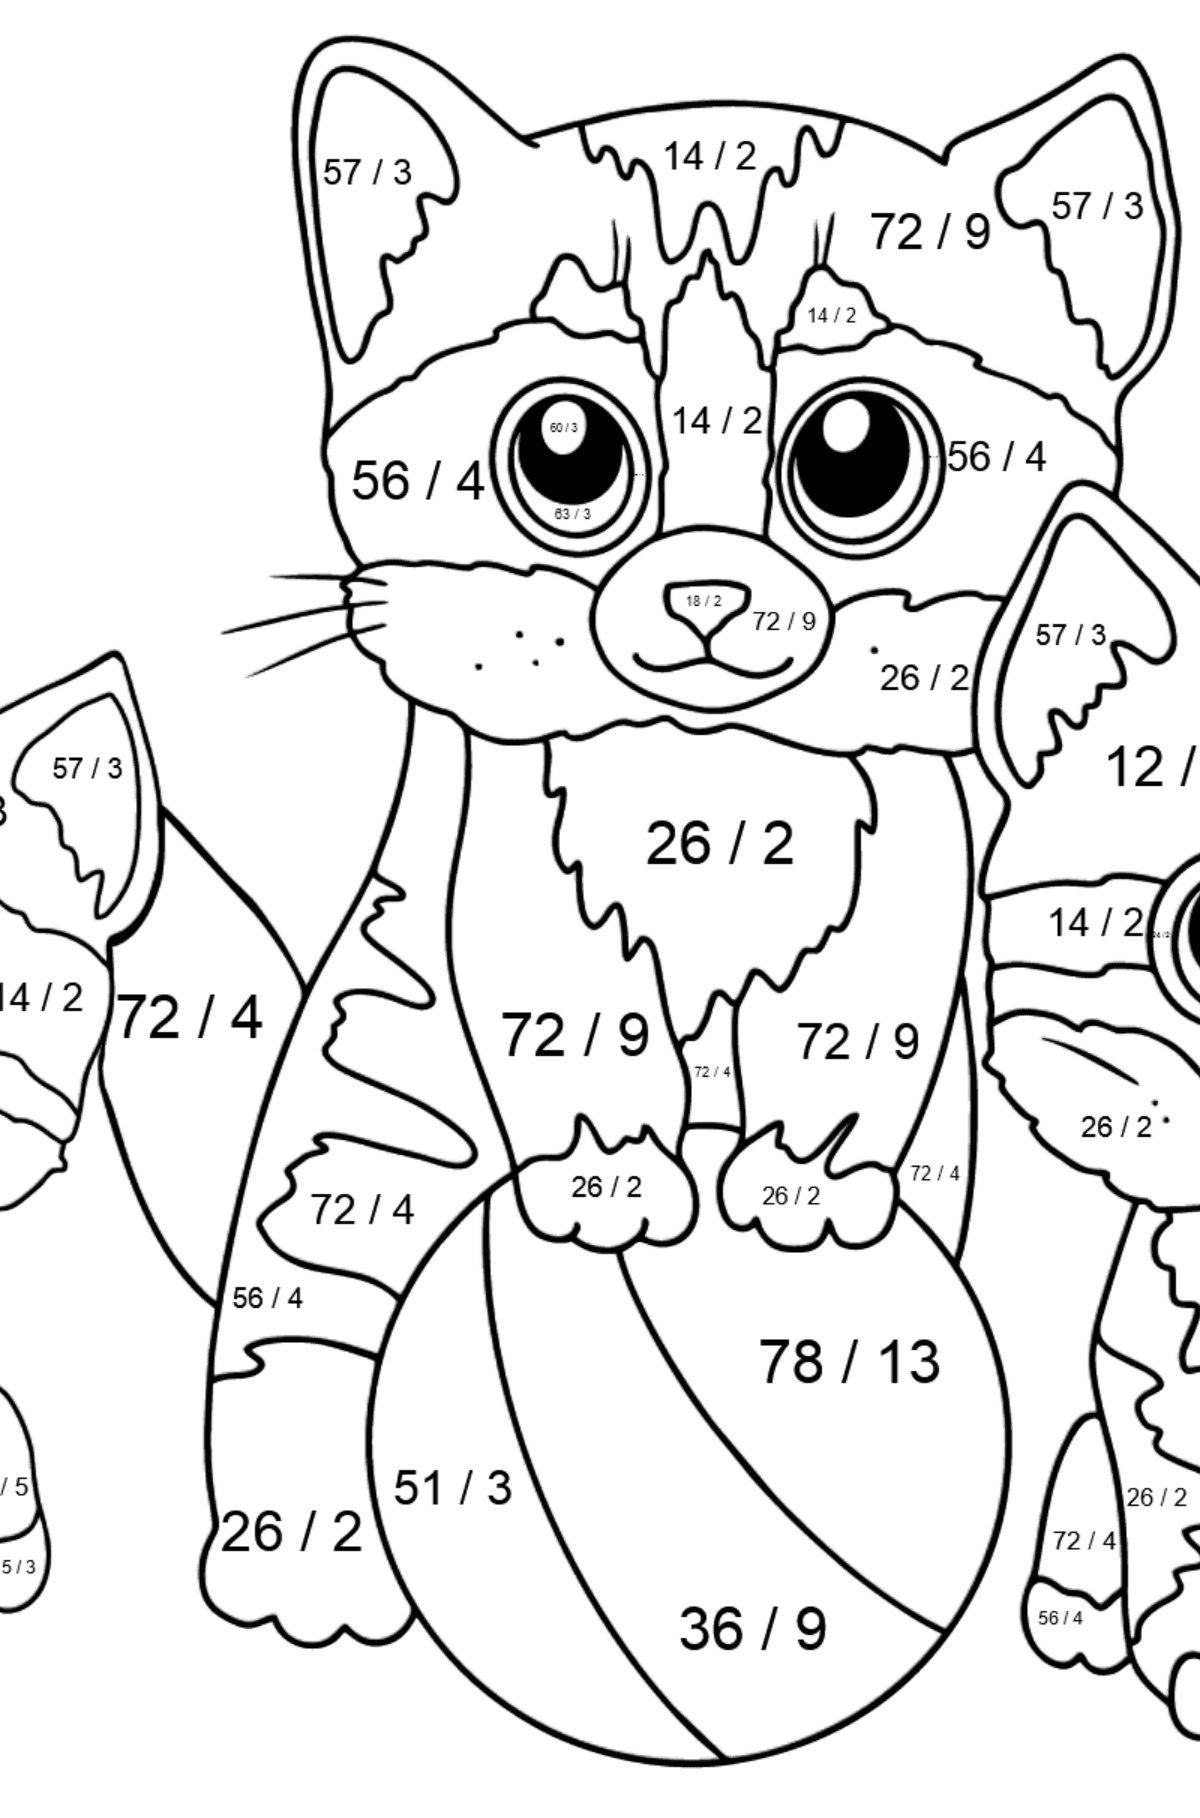 Coloring Page - Three Kittens are Playing Together with a Ball  - Math Coloring - Division for Kids